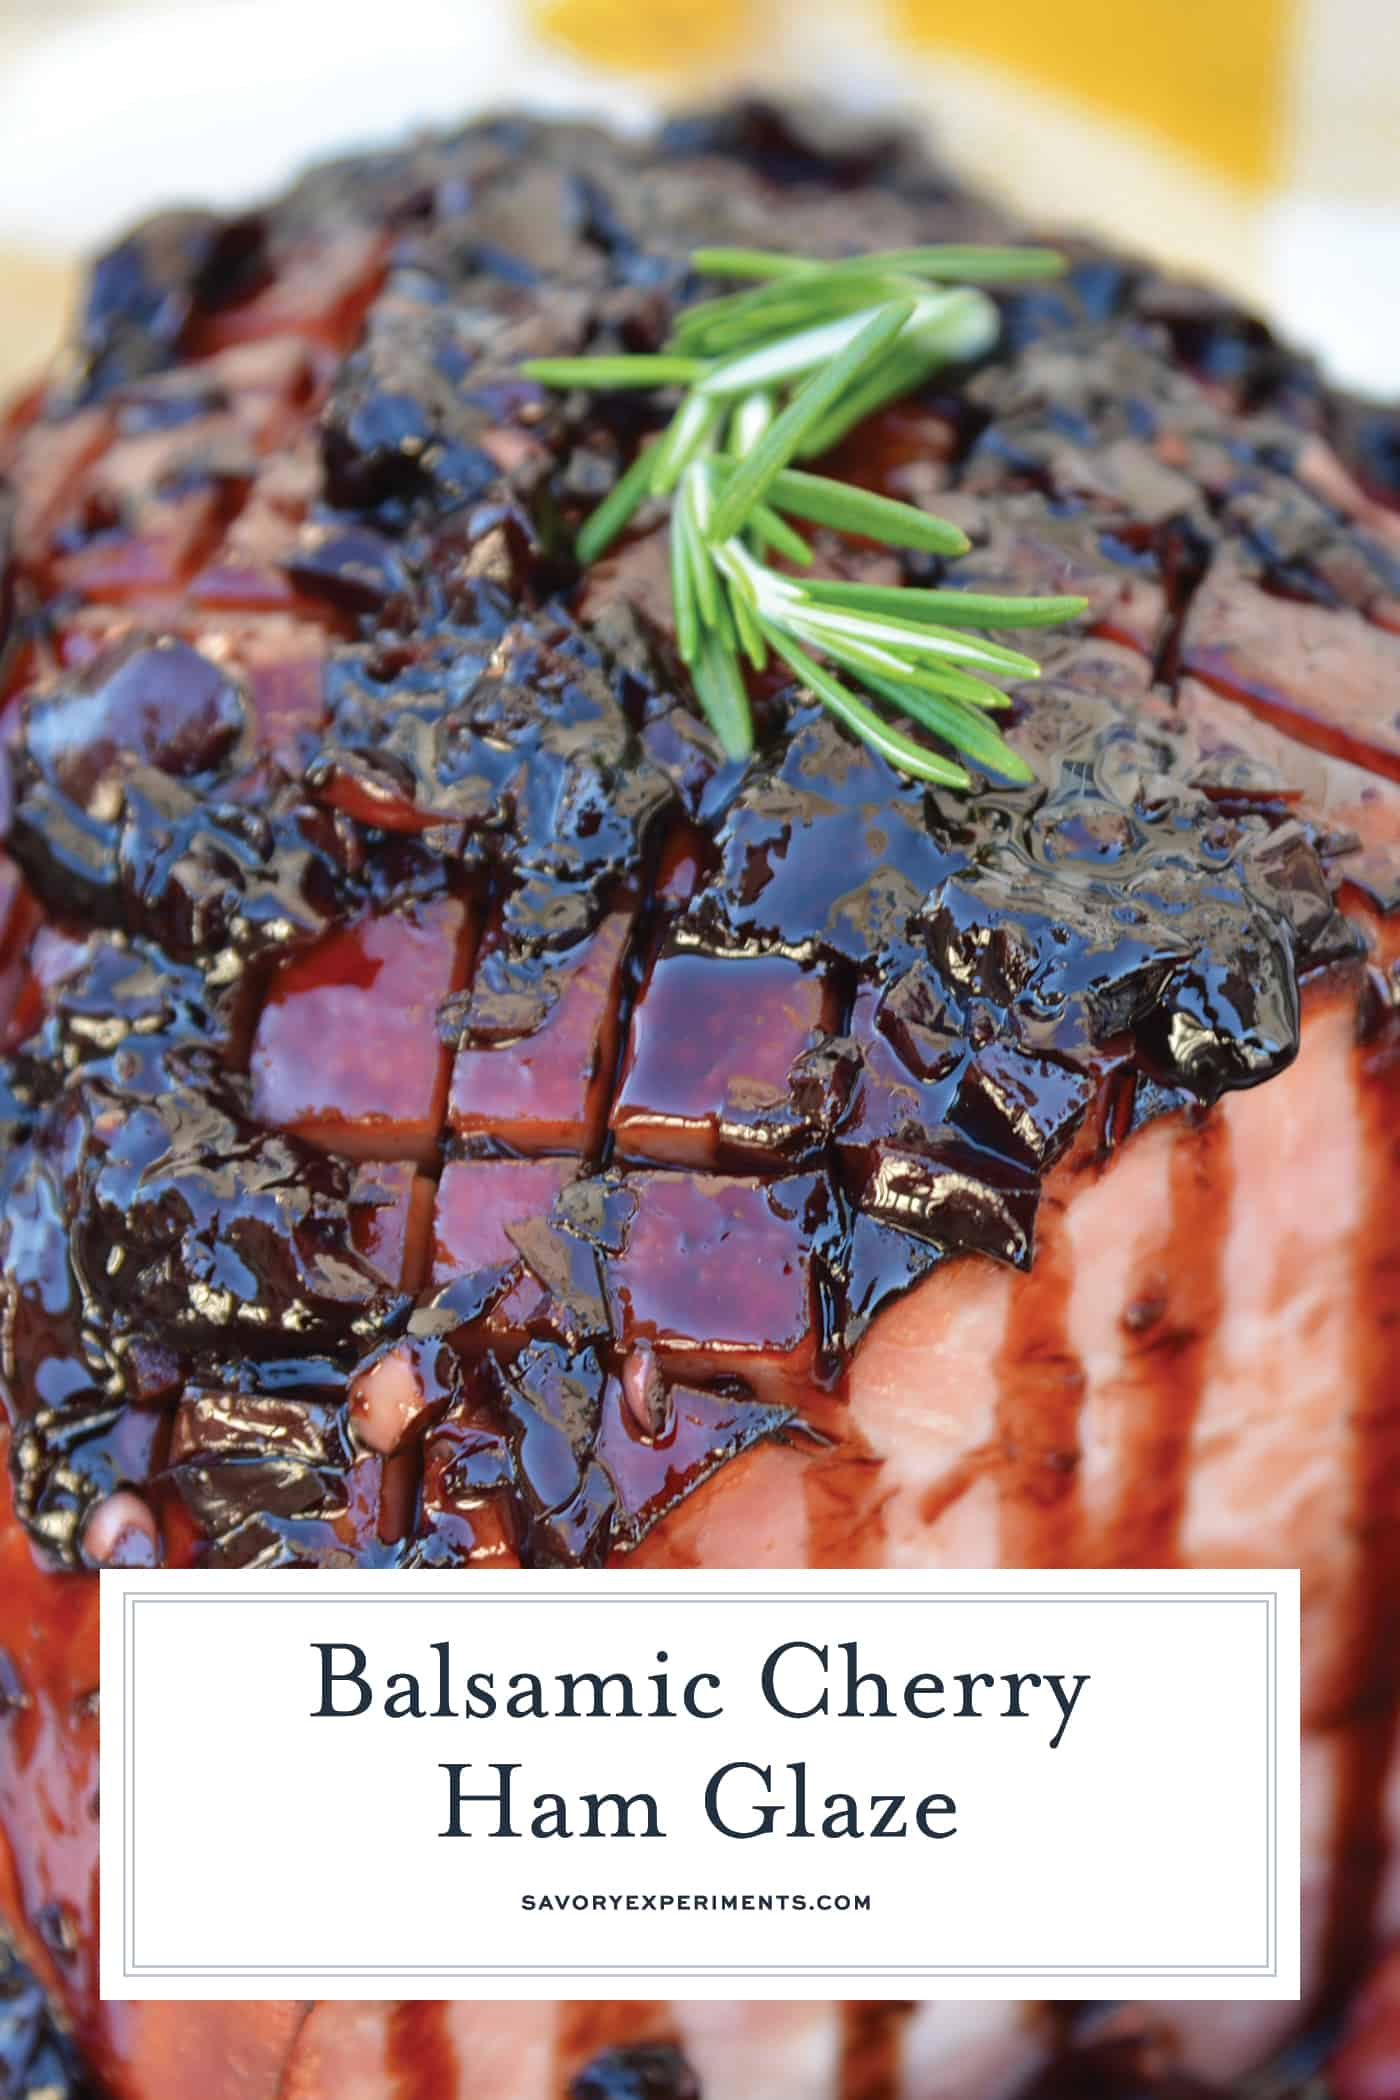 Balsamic Cherry Ham Glaze is an easy ham glaze for your Christmas ham or any baked ham throughout the year. Tart cherries, balsamic vinegar and brown sugar lend bold flavors. #hamglaze #christmasham #hamrecipe www.savoryexperiments.com